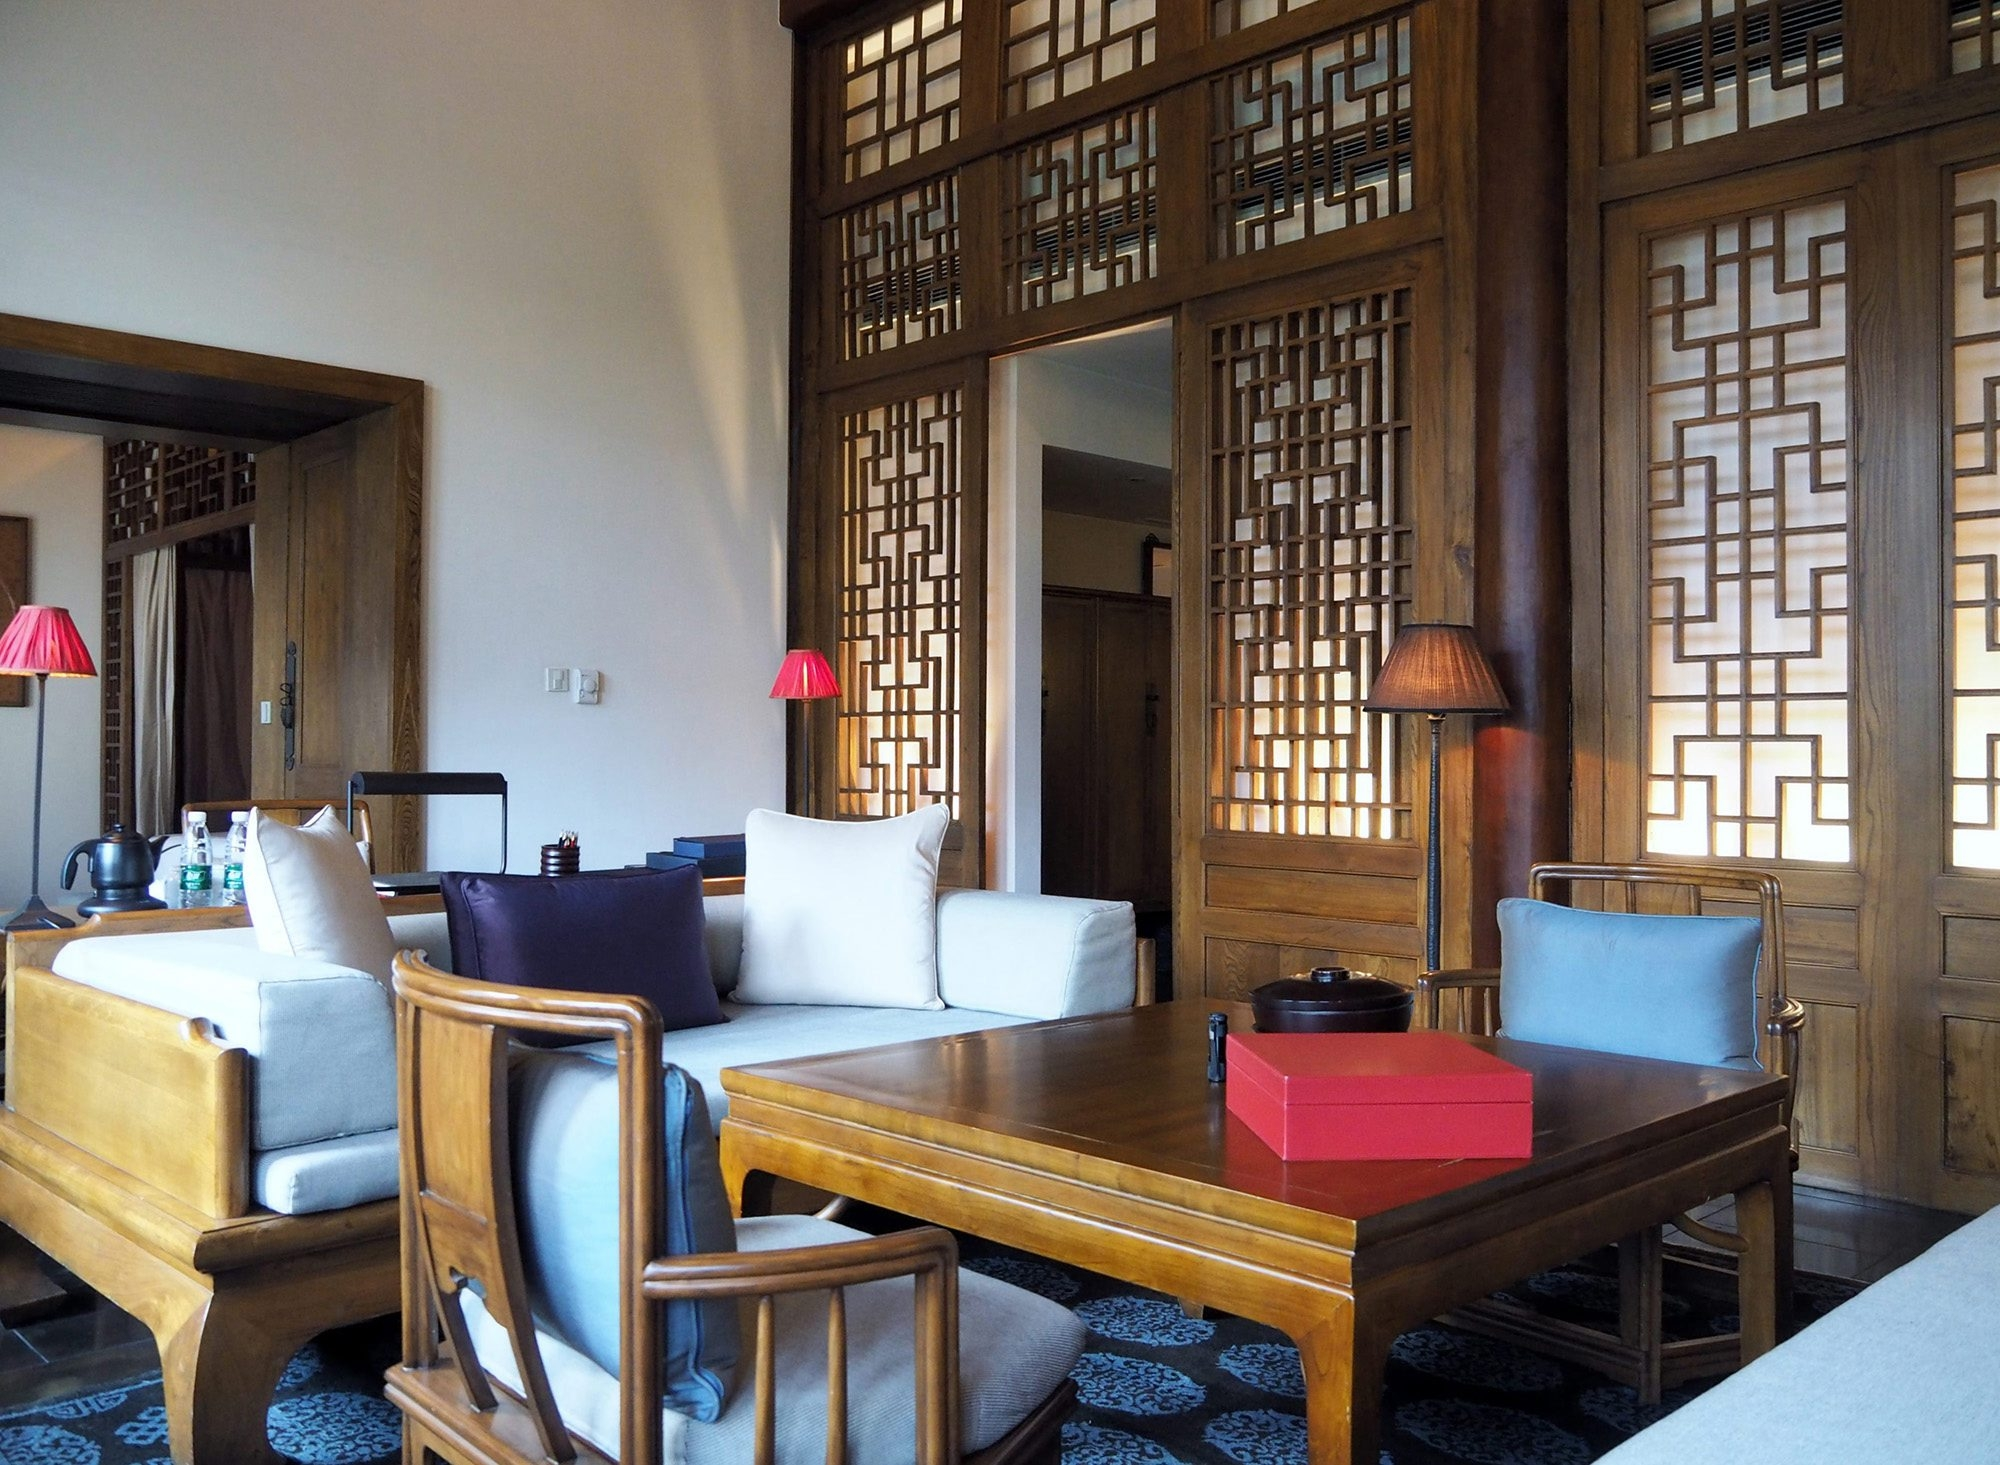 A suite in Aman iat Summer Palace in Beijing sparing employs traditional in accents Chinese red Illustrates DESIGN-CHINA (category l), by Vern Yip, (c) 2014, The Washington Post.  Moved Monday, October 13, 2014. (MUST CREDIT: Vern Yip.)